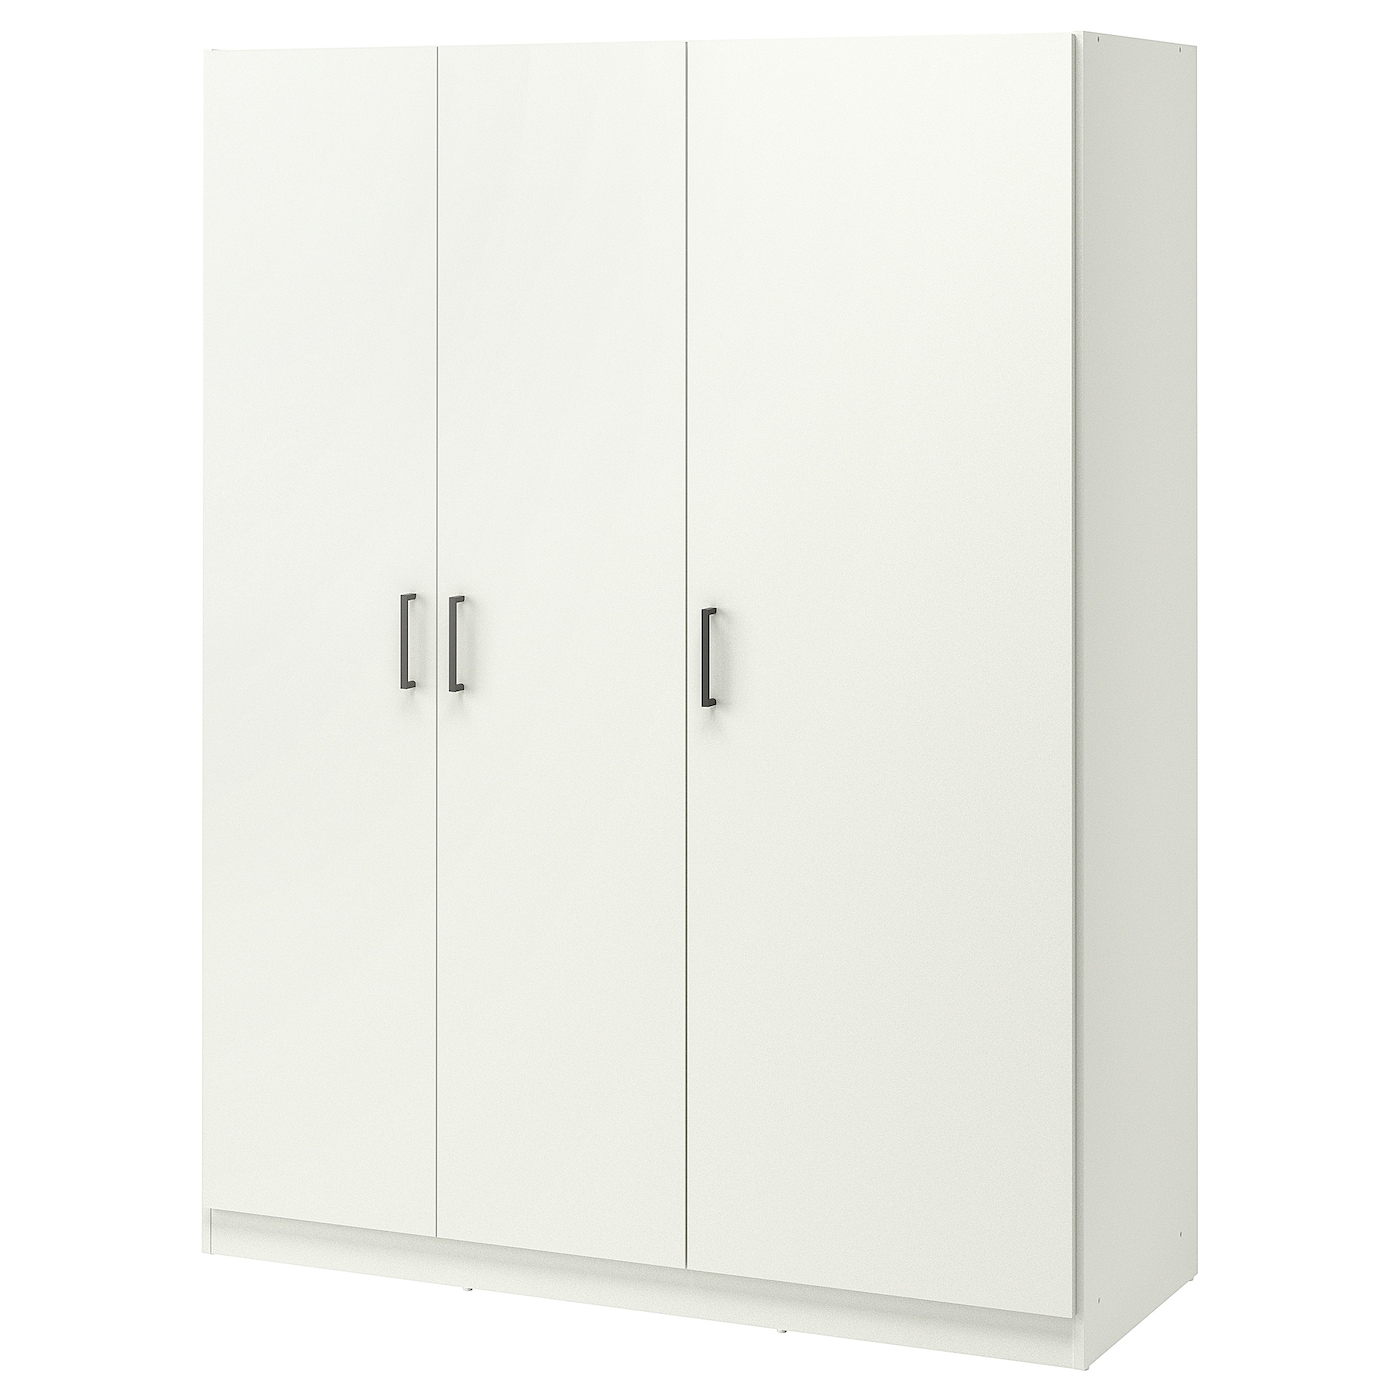 IKEA DOMBÅS wardrobe Adjustable shelves make it easy to customise the space according to your needs.